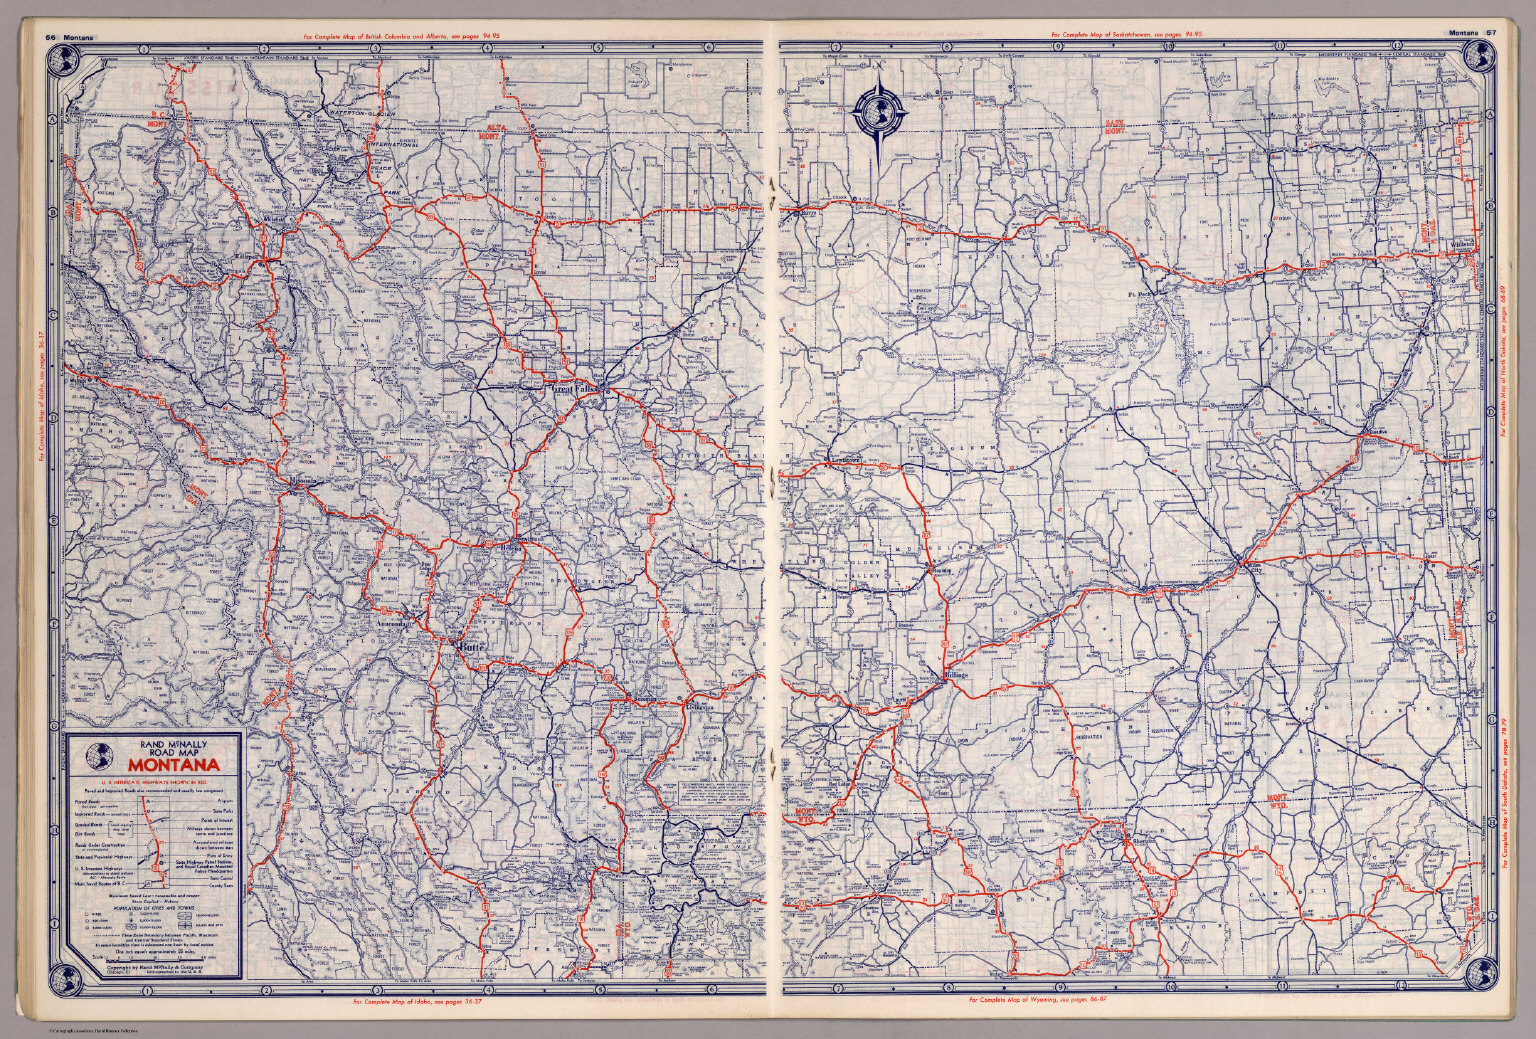 Rand McNally Road map: Montana - David Rumsey Historical Map Collection